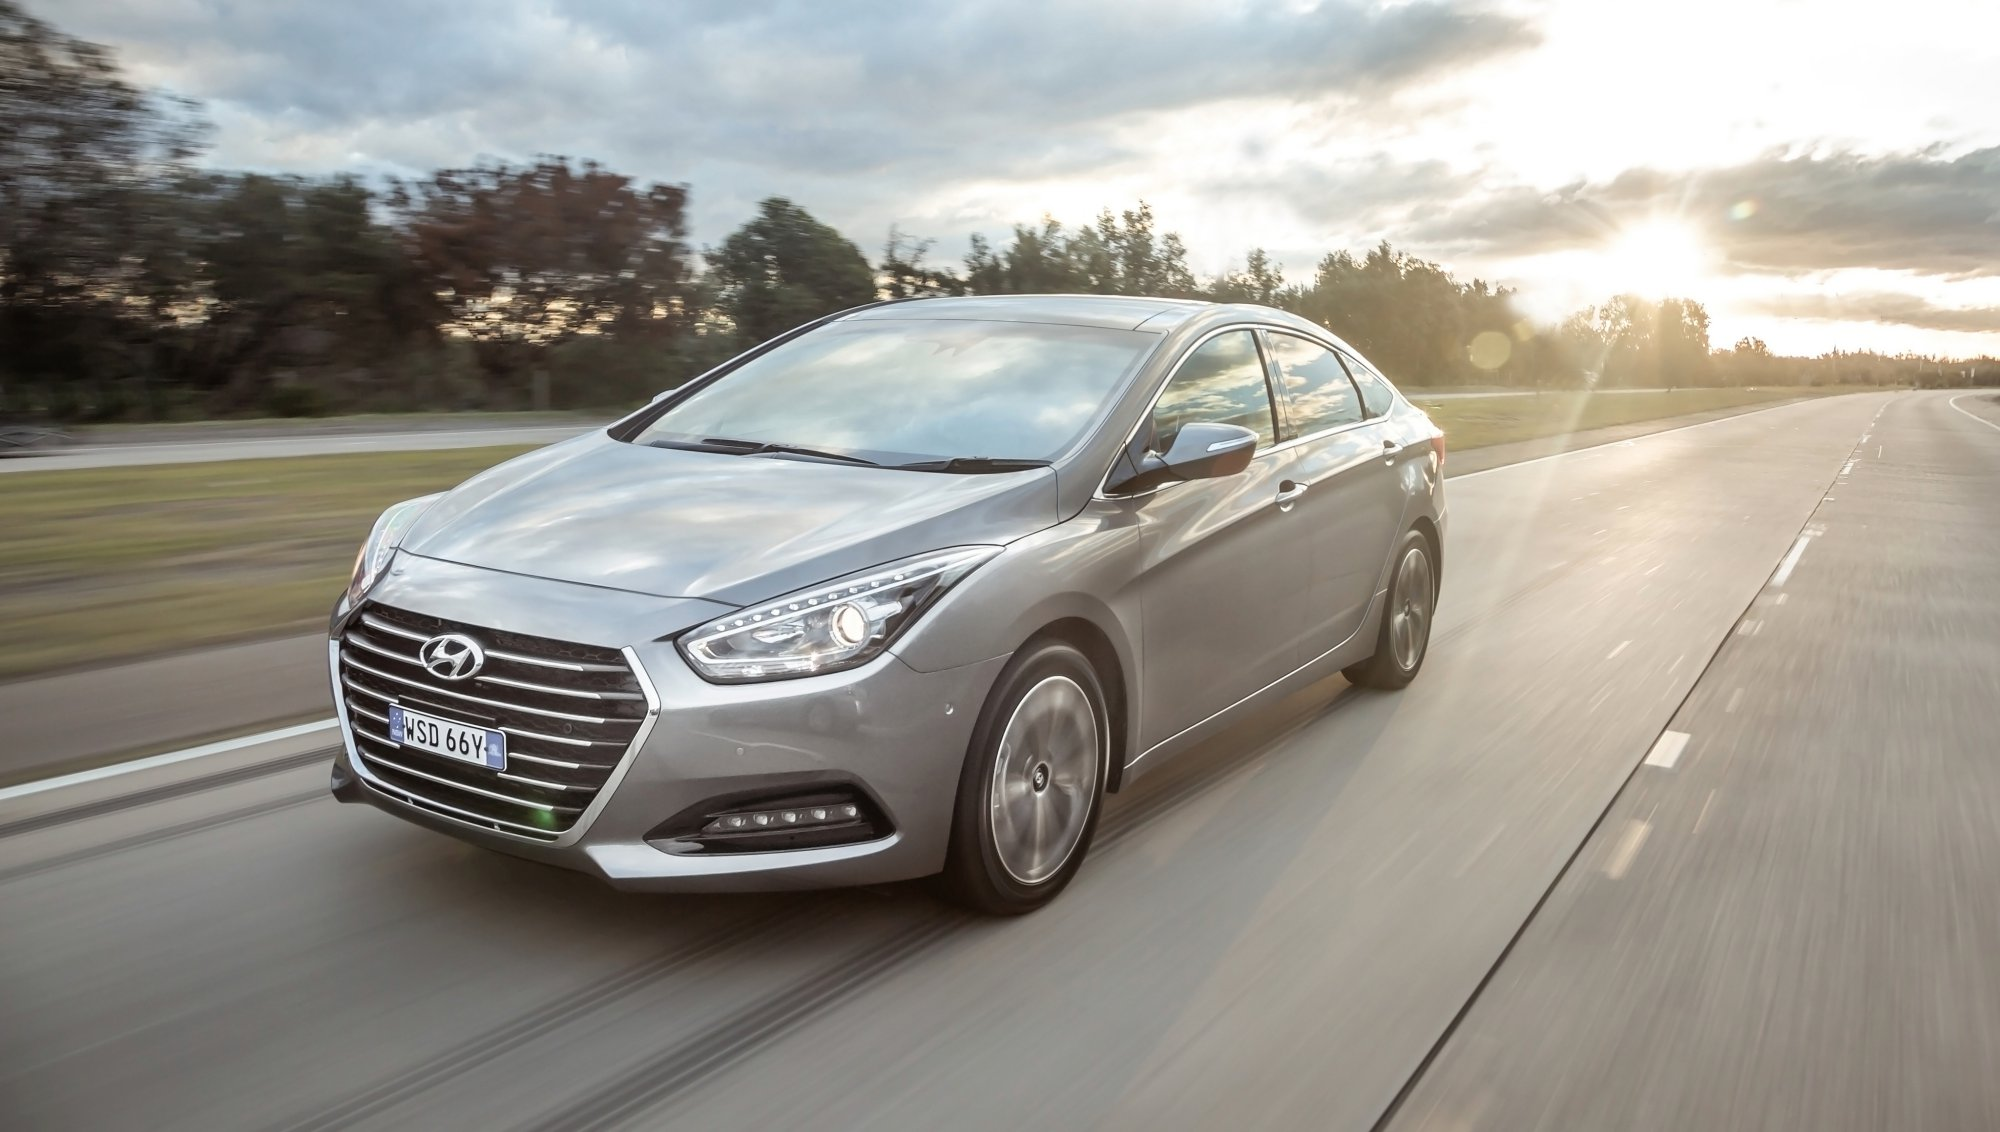 Review - 2017 Hyundai i40 - Review